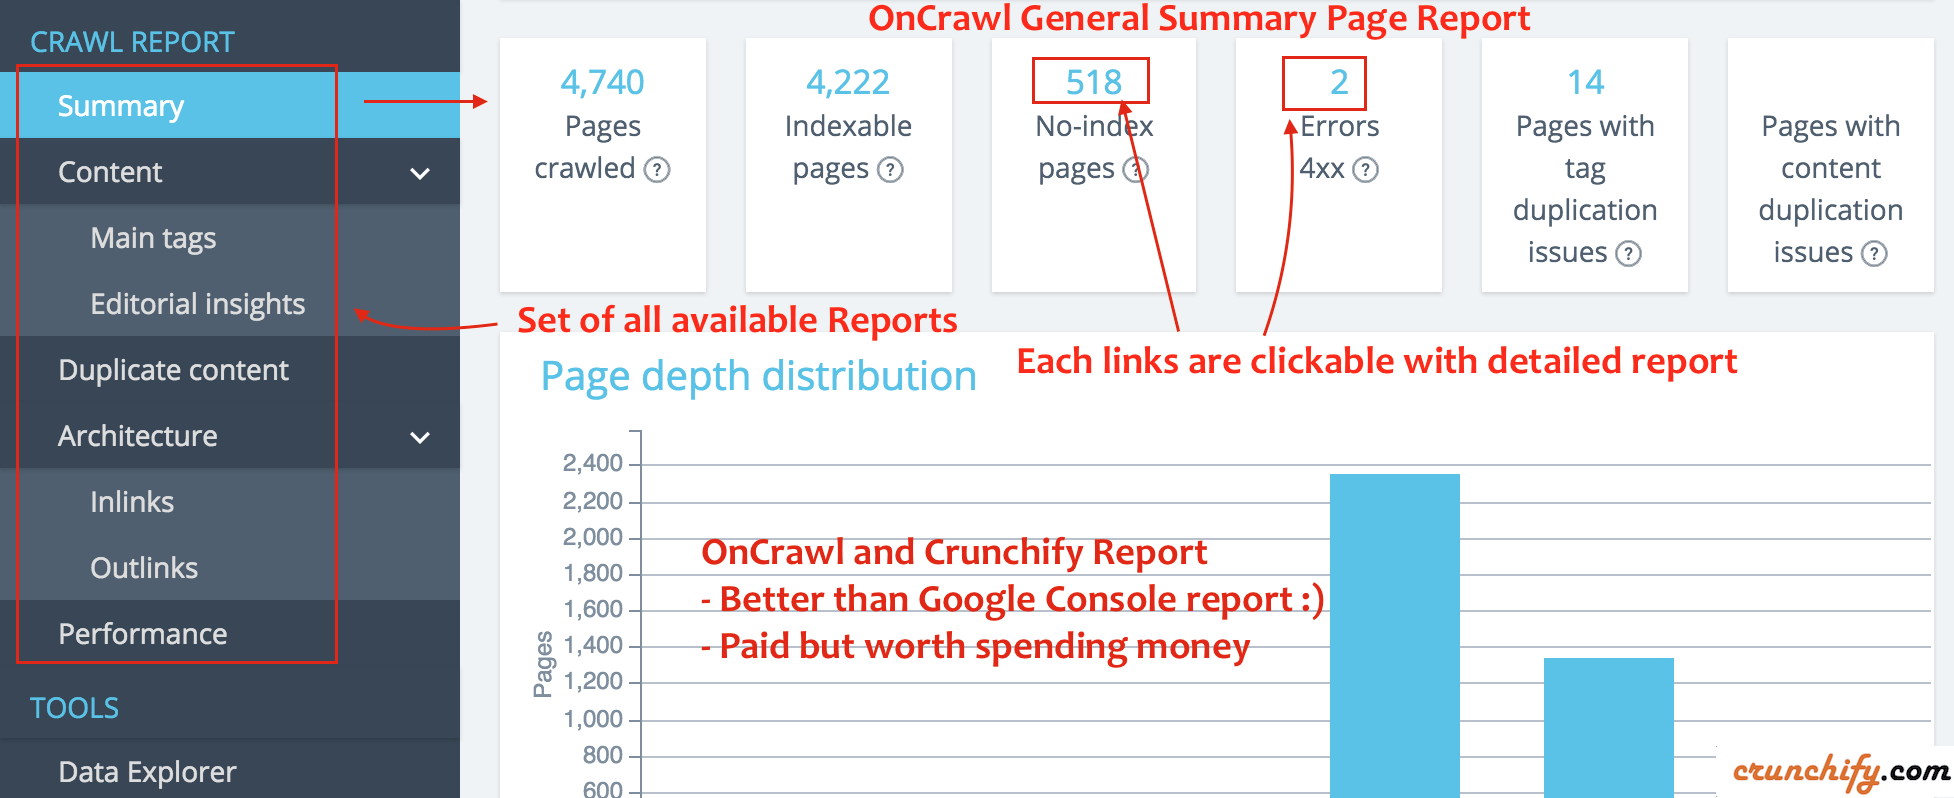 OnCrawl General Summary Page Report - Crunchify report